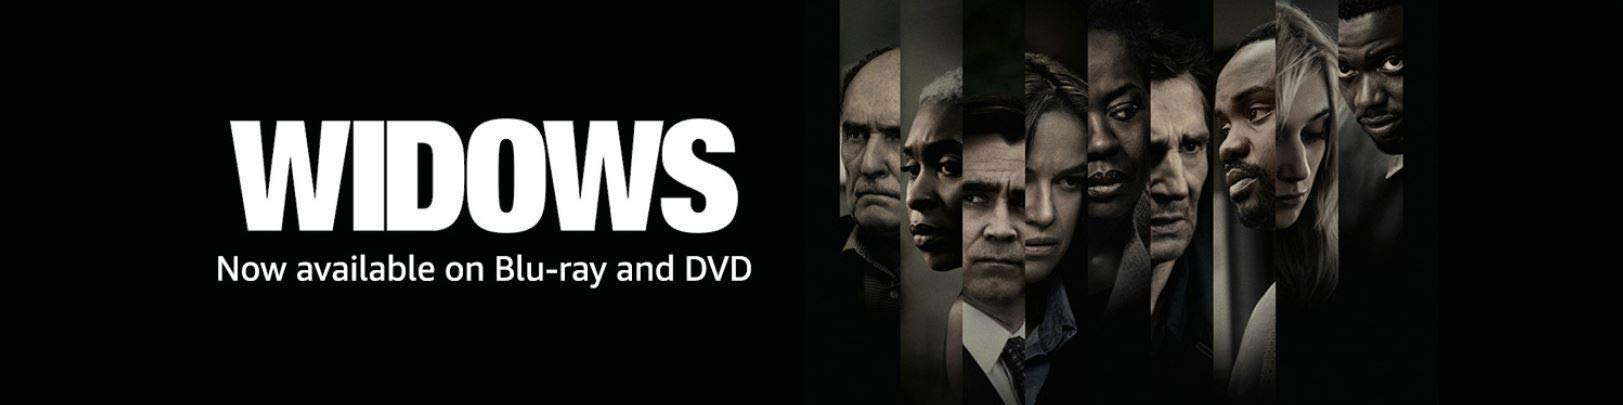 Widows - Now available